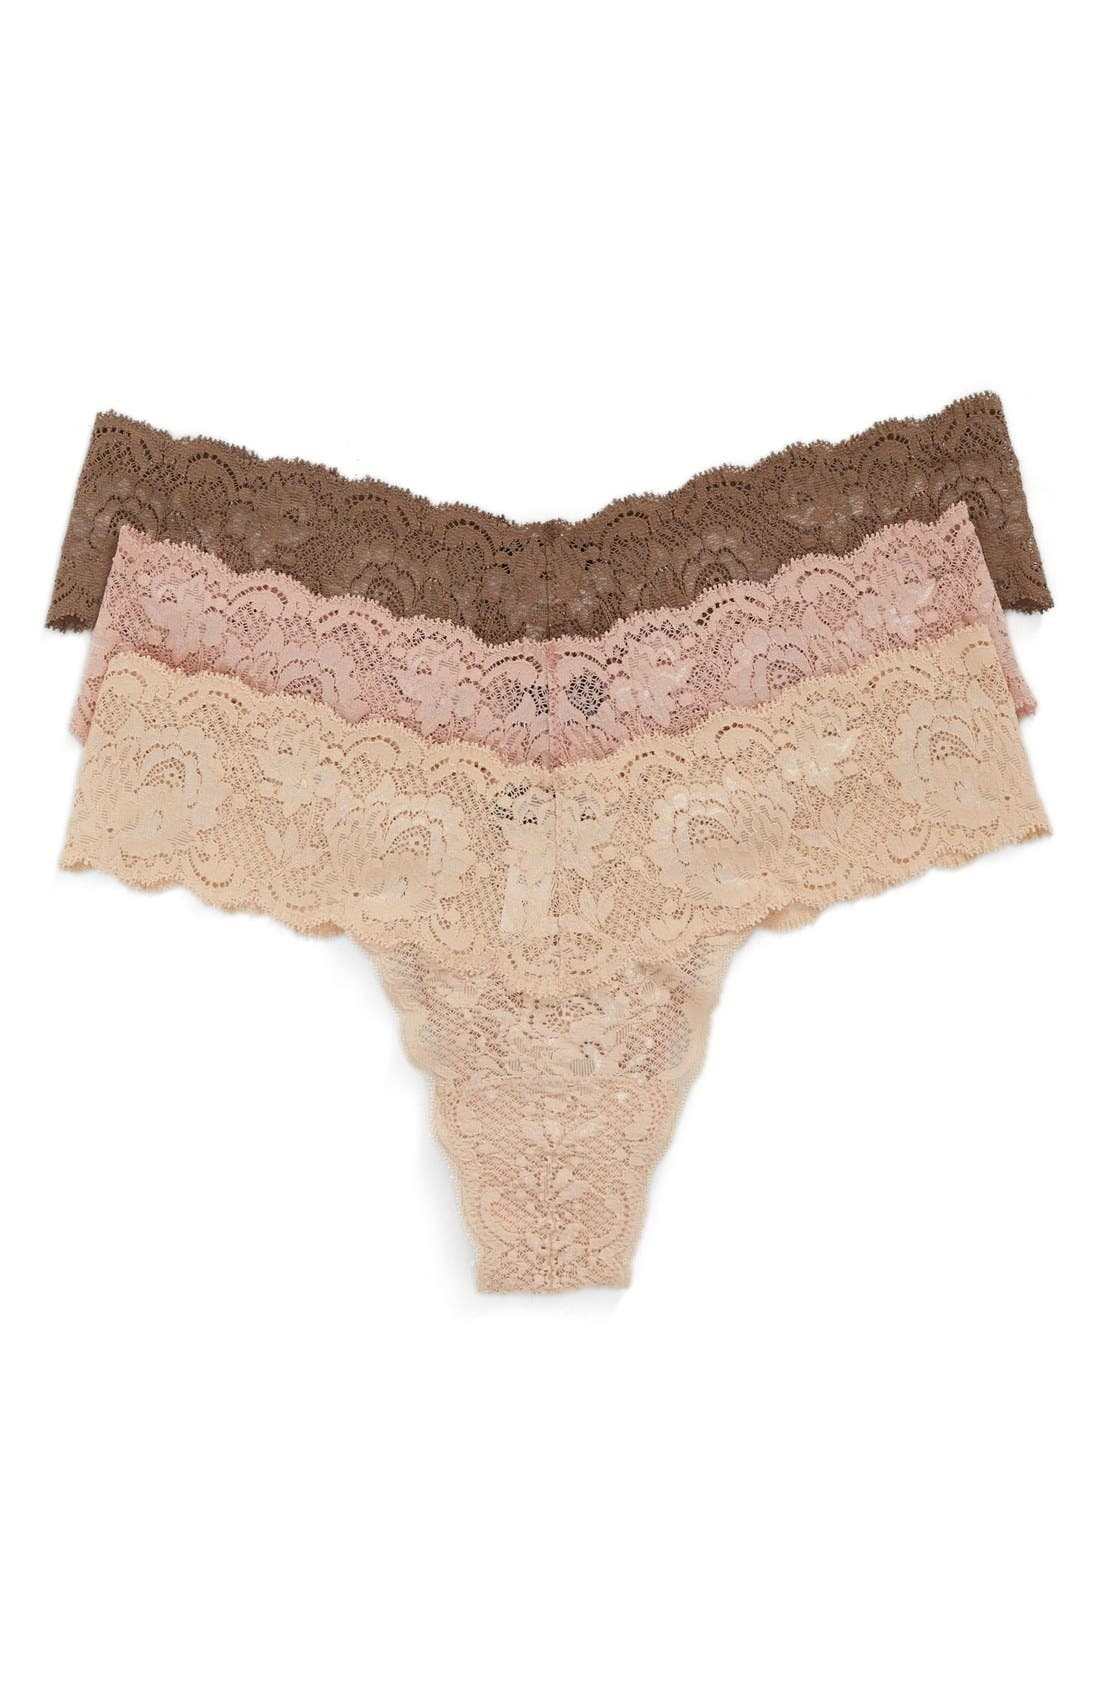 Alternate Image 1 Selected - Cosabella 'Never Say Never Cutie' Thong (3-Pack)